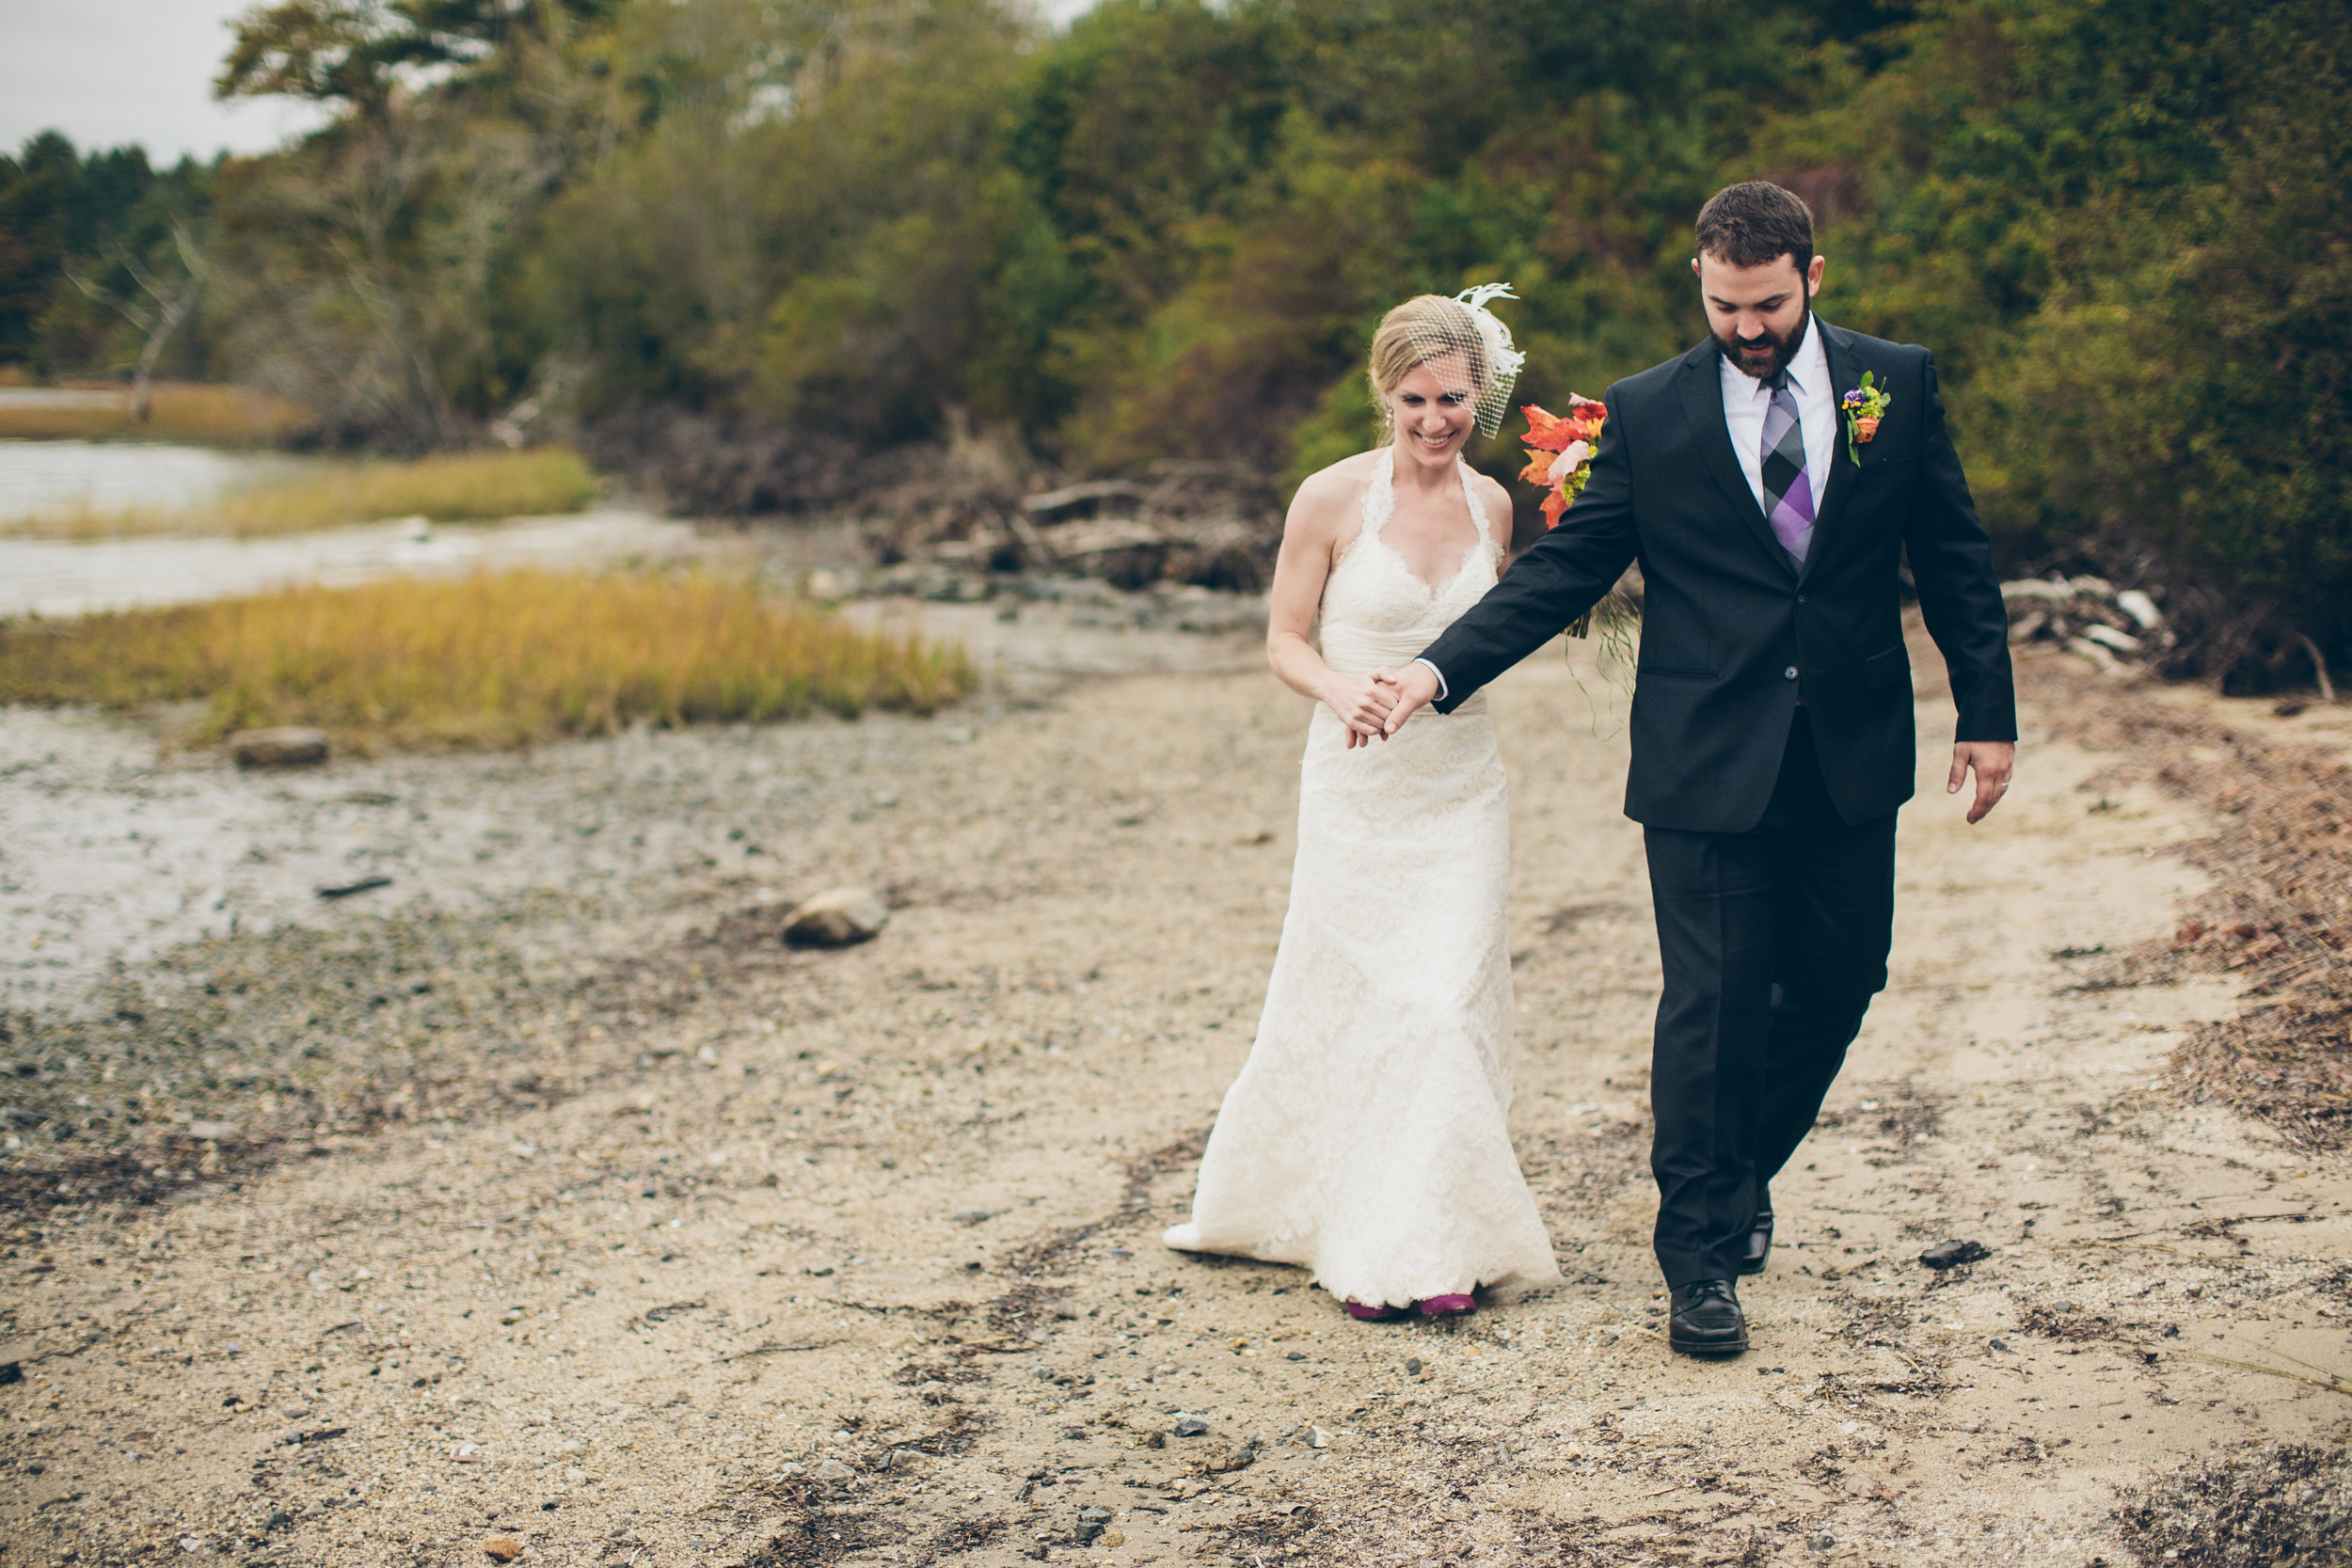 Maine-Wedding-Photography-Pangtography